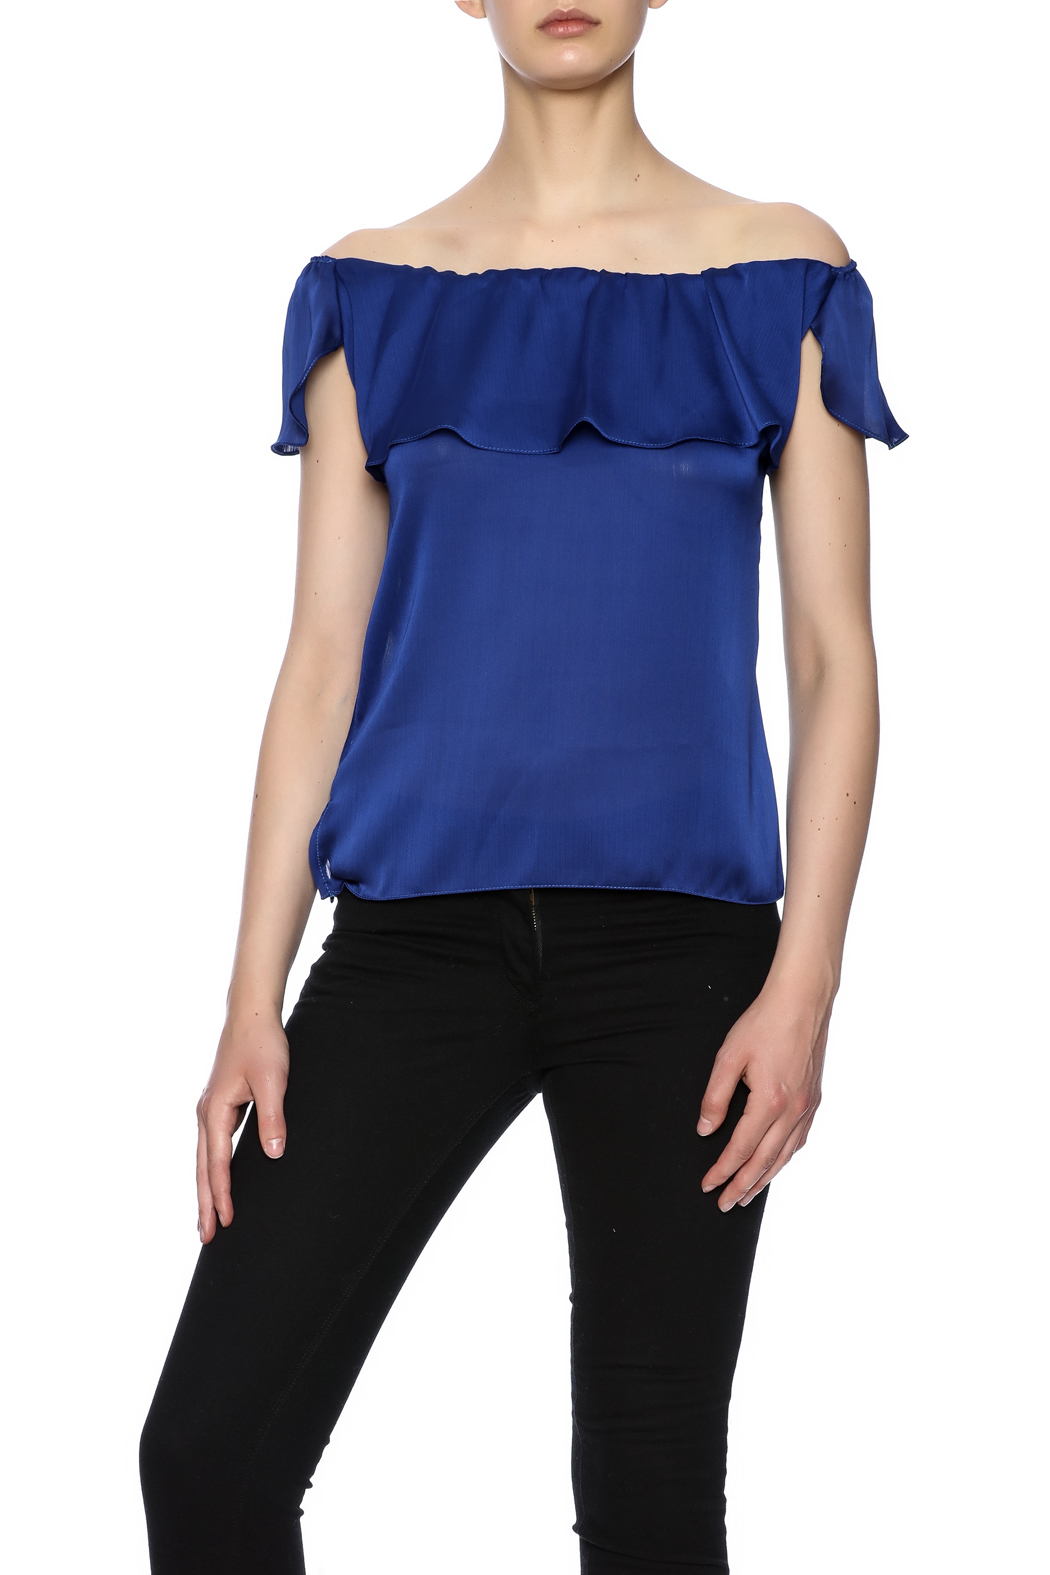 K&D London Off Shoulder Top - Main Image